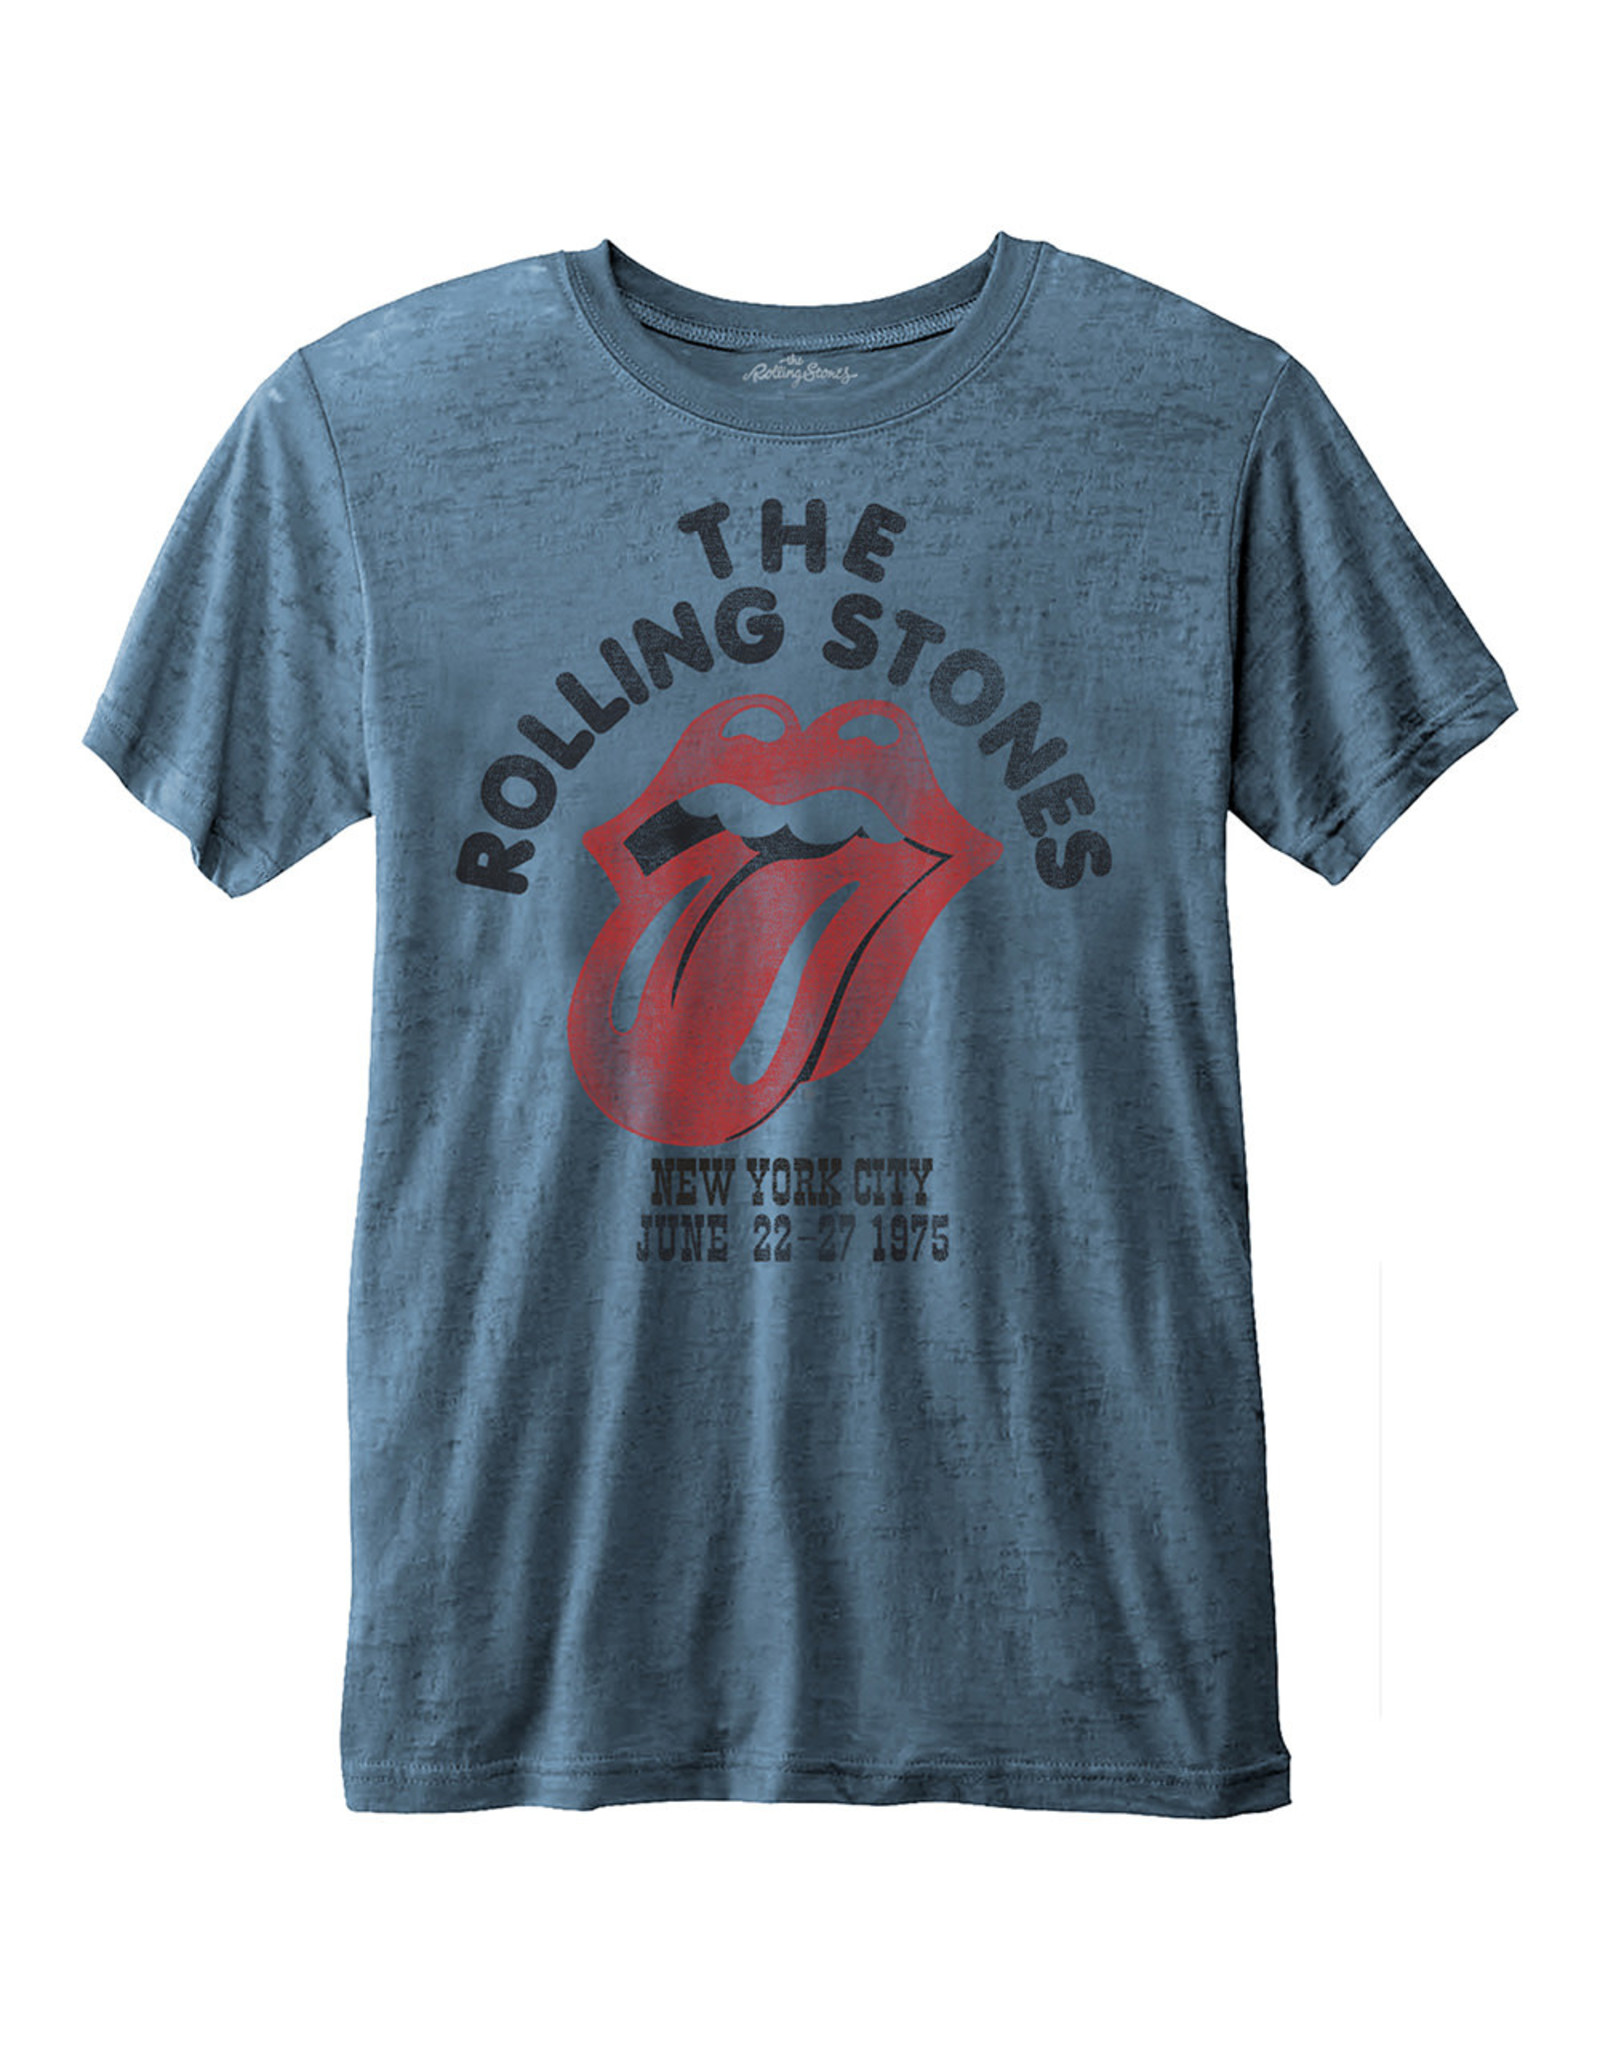 ROLLING STONES - T-Shirt BurnOut - NYC 1975 (S)